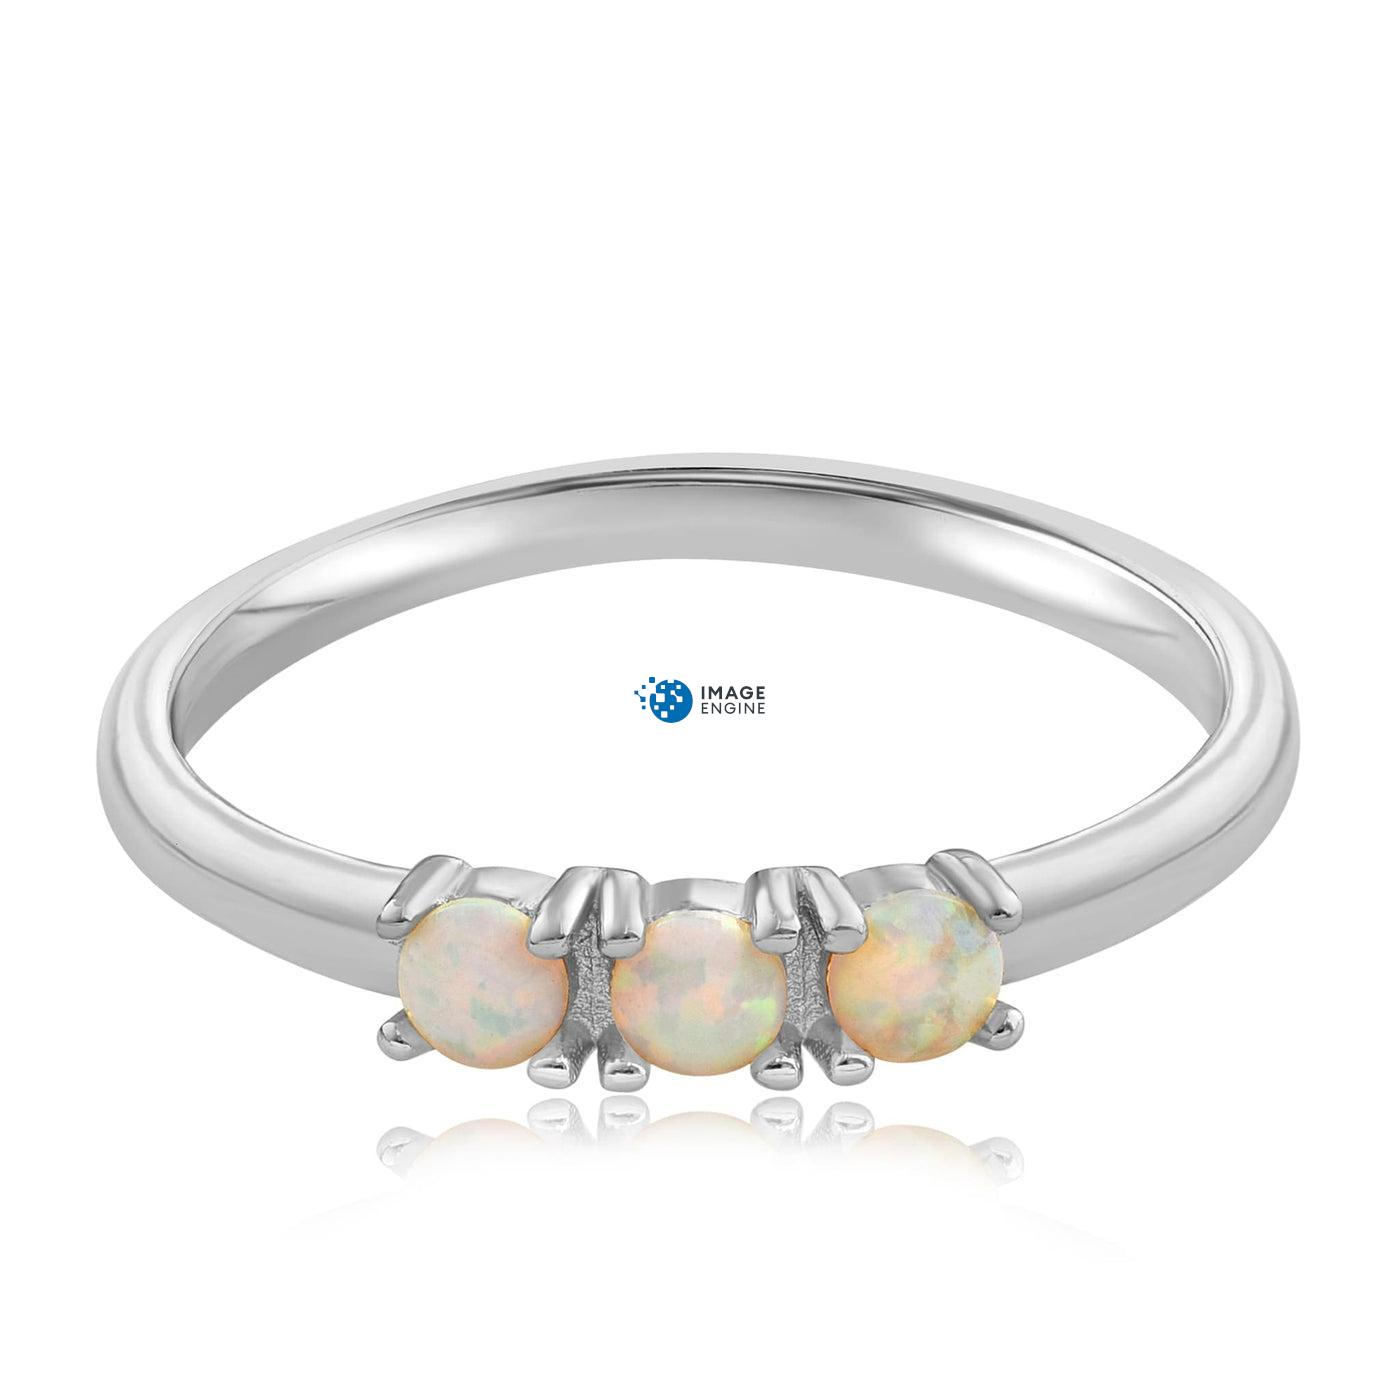 Simple Dots White Fire Opal Ring - Front View Facing Down - 925 Sterling Silver